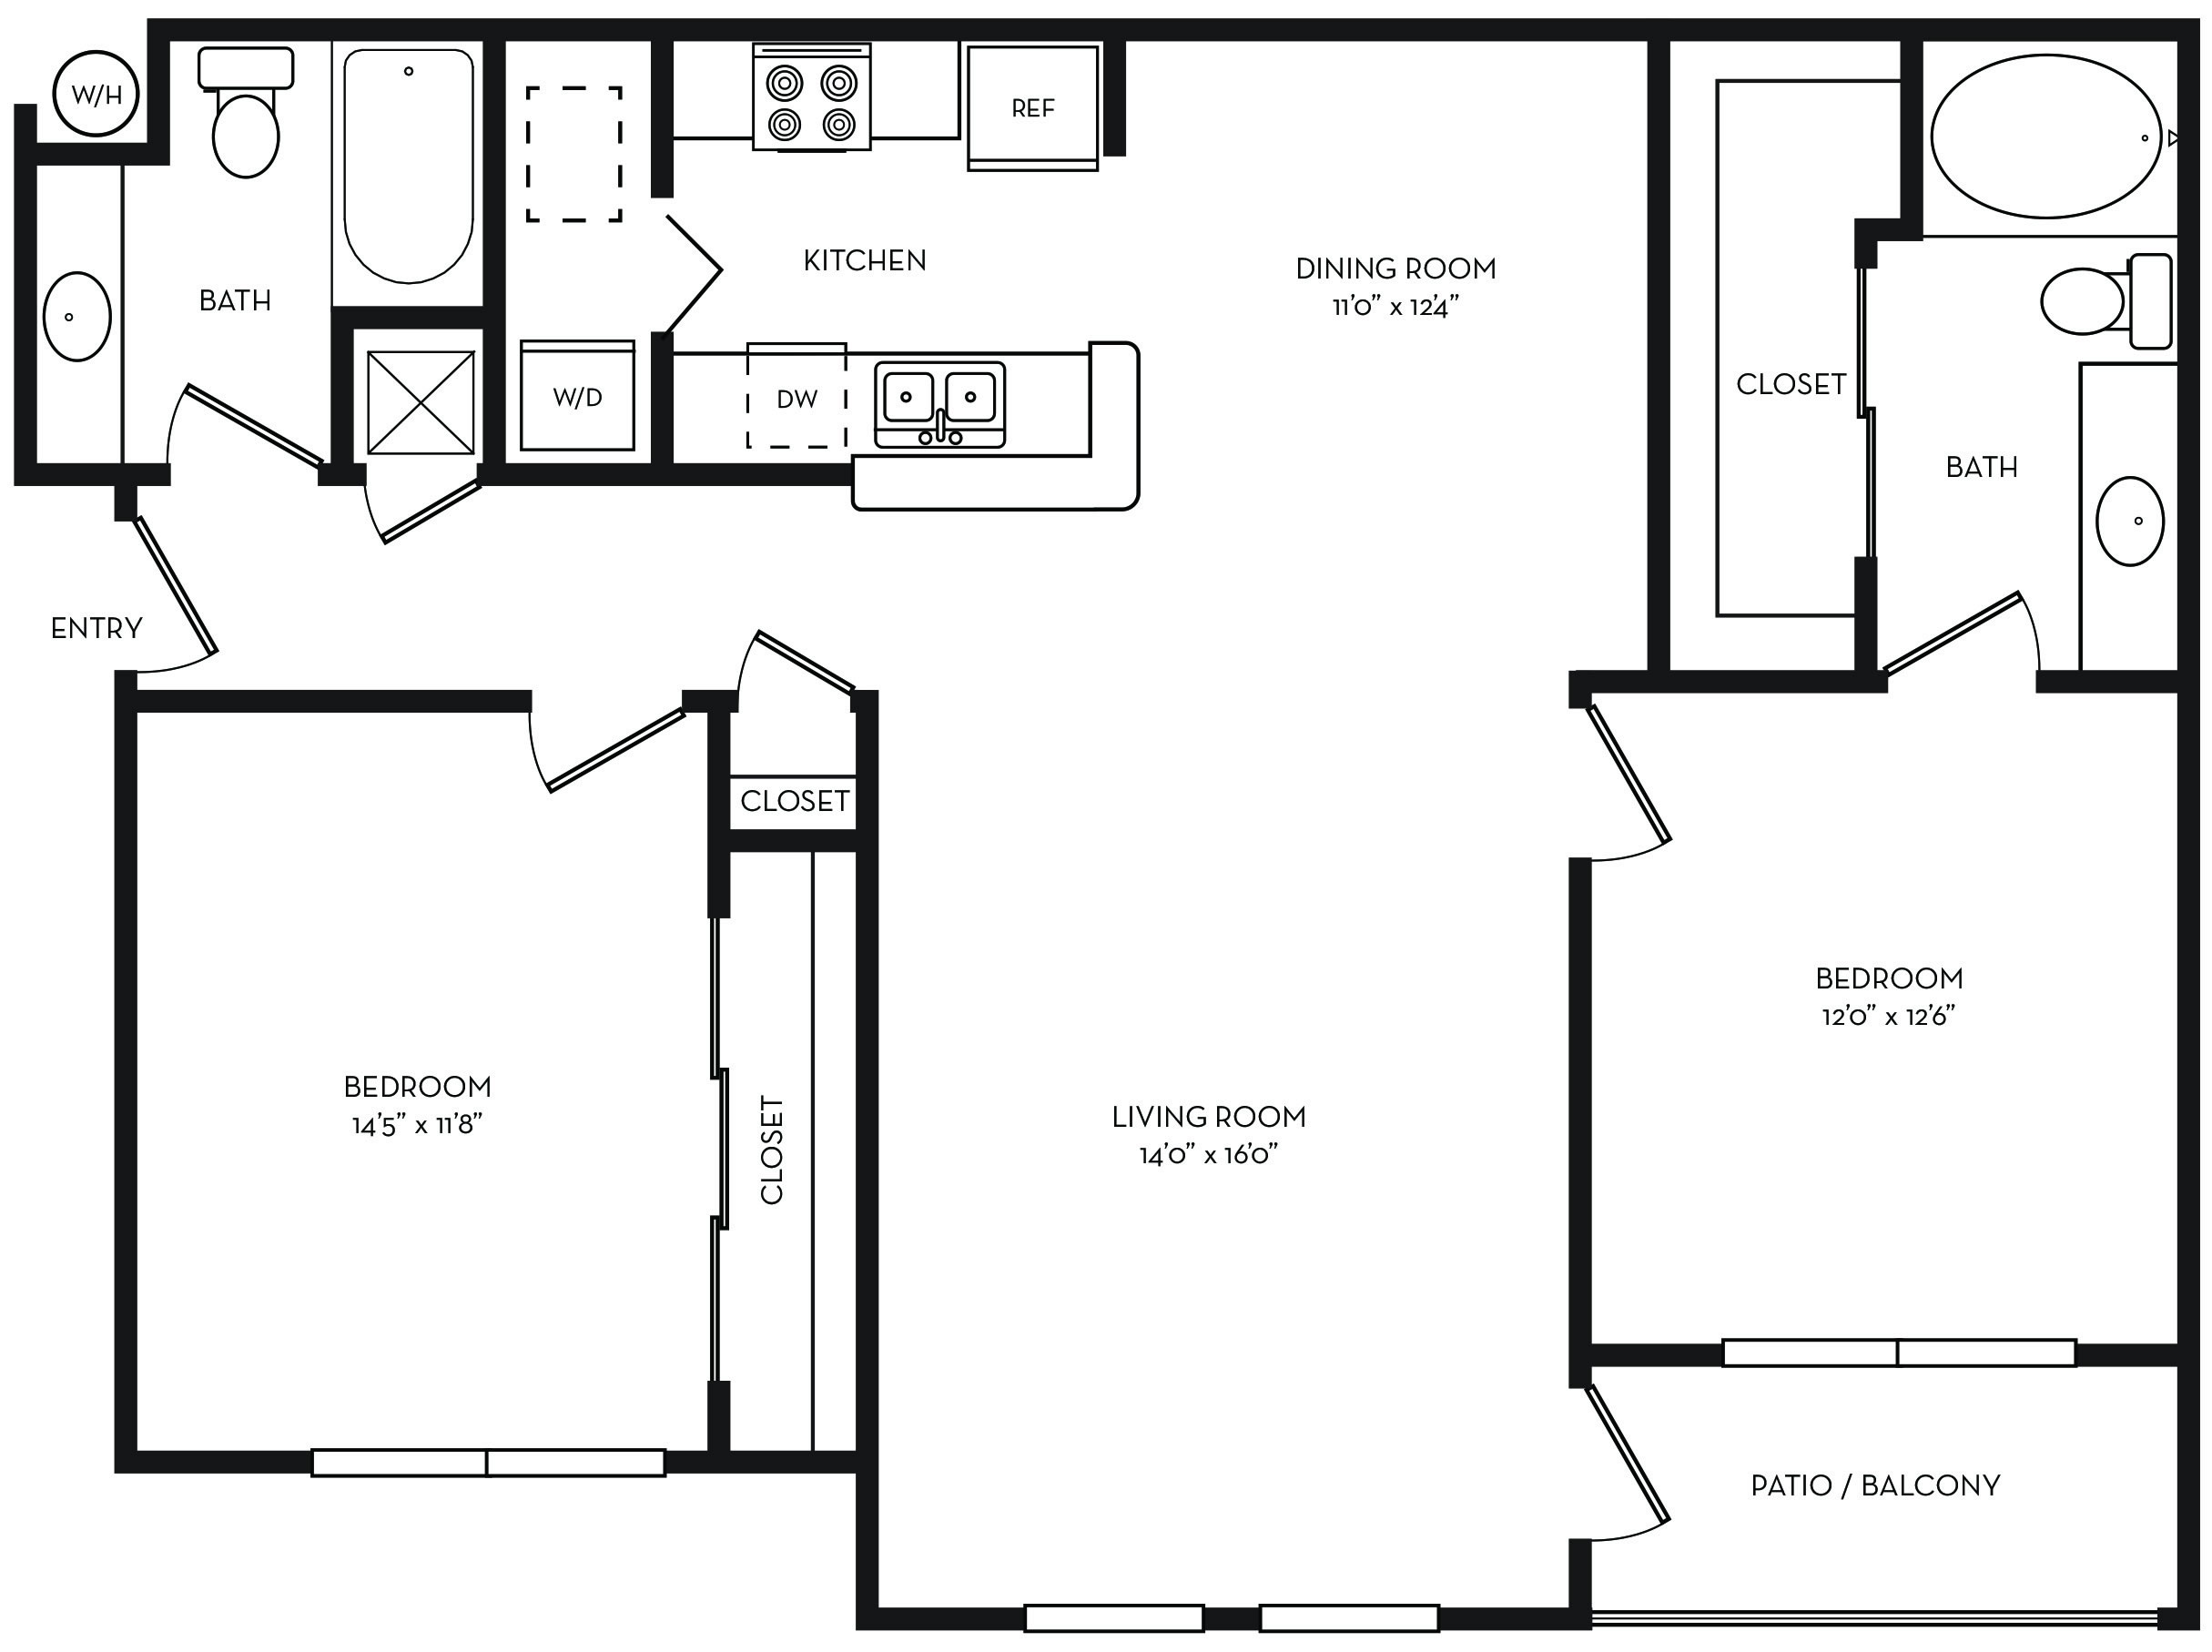 Floor plan definition meaning apartments in law suite for Floor definition